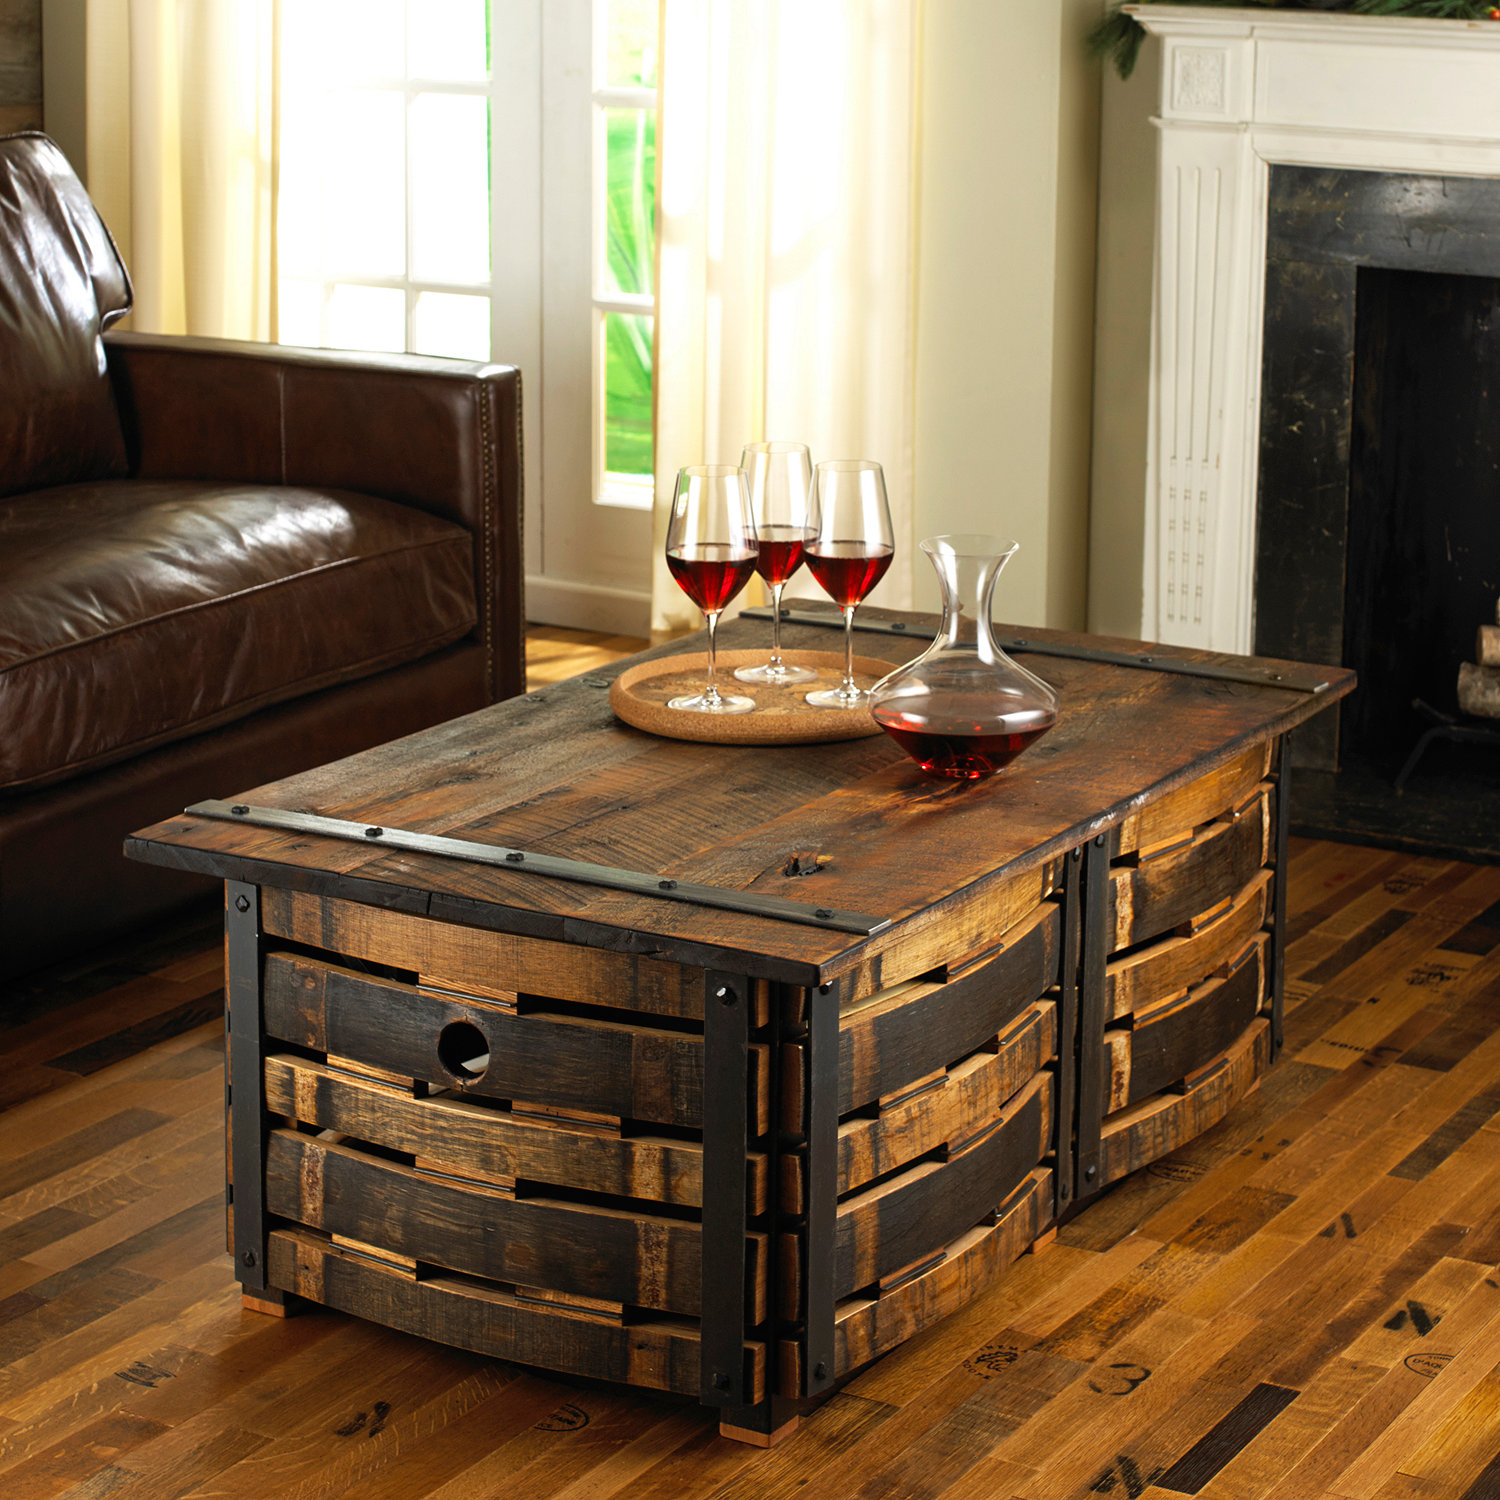 wine barrel stave coffee table preparing zoom arched table top wine cellar furniture